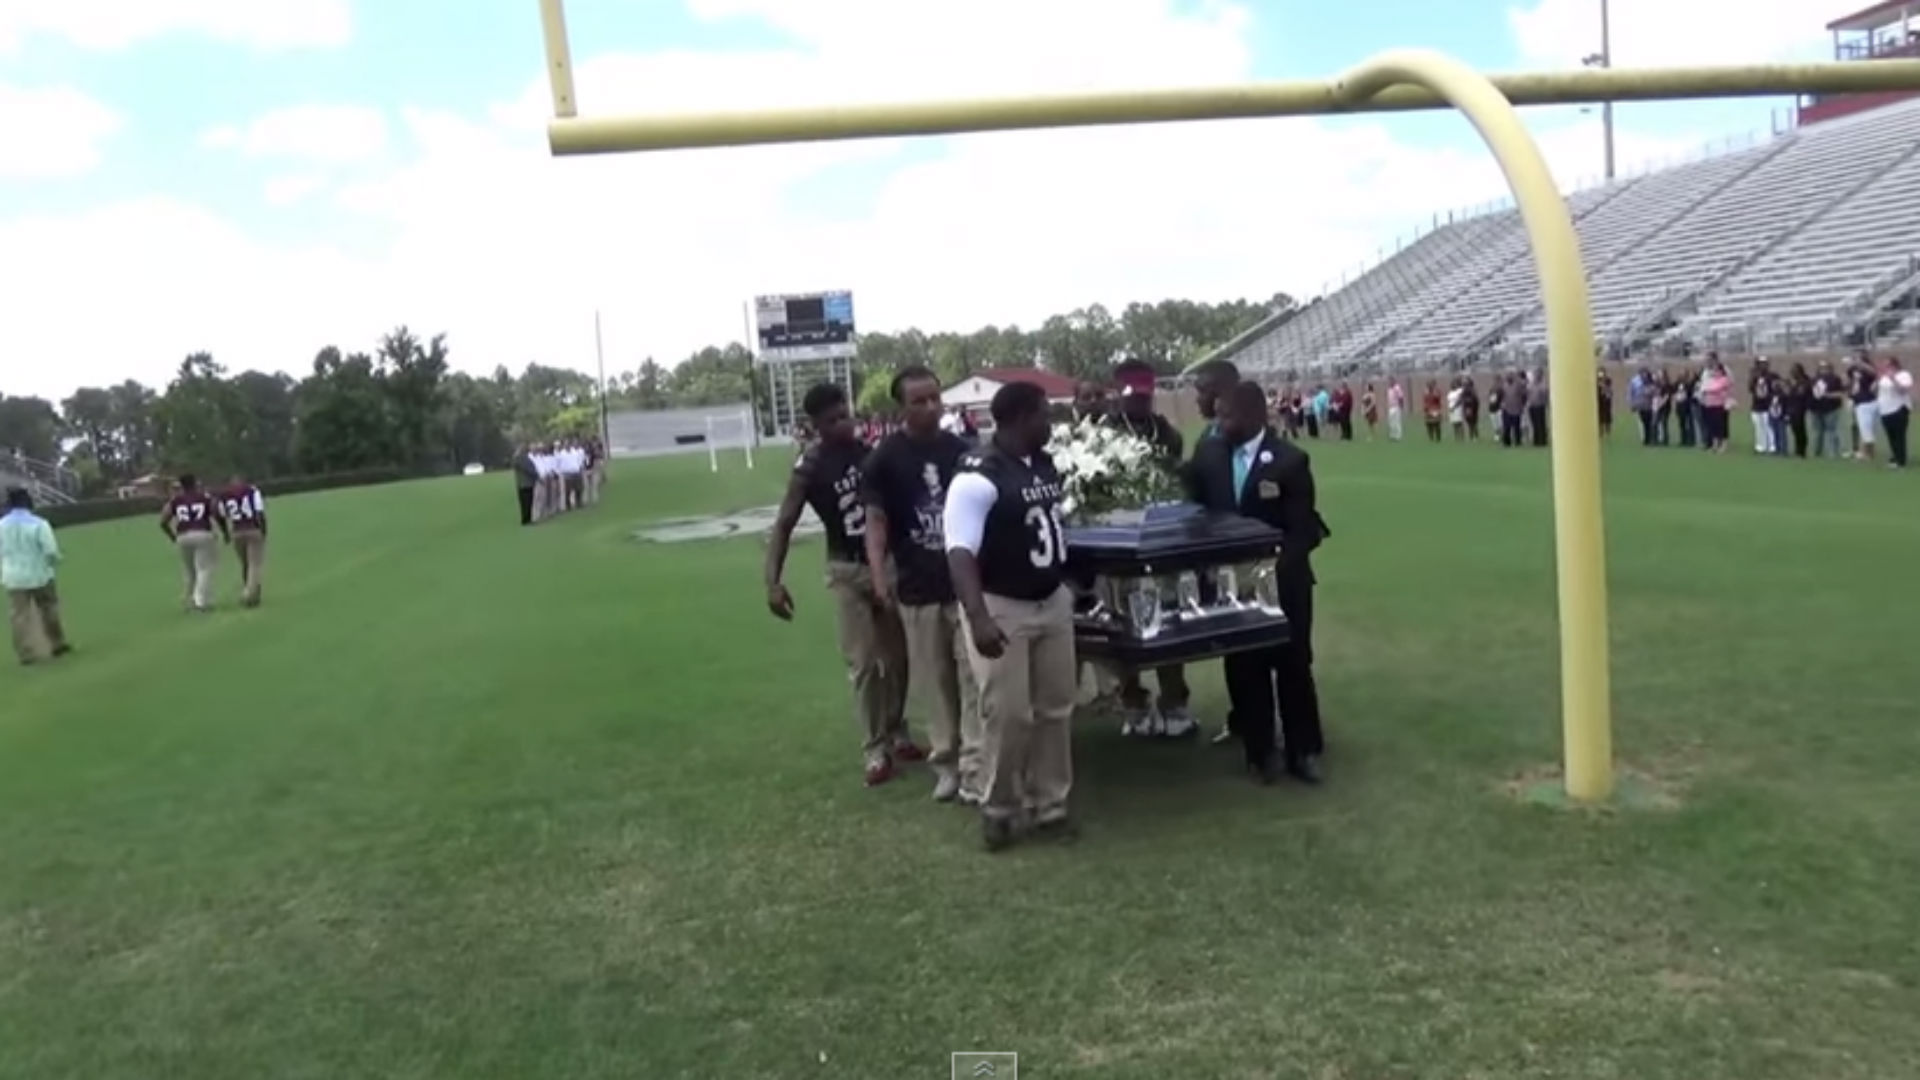 High school football team grants teammate's dying wish by carrying his casket across field